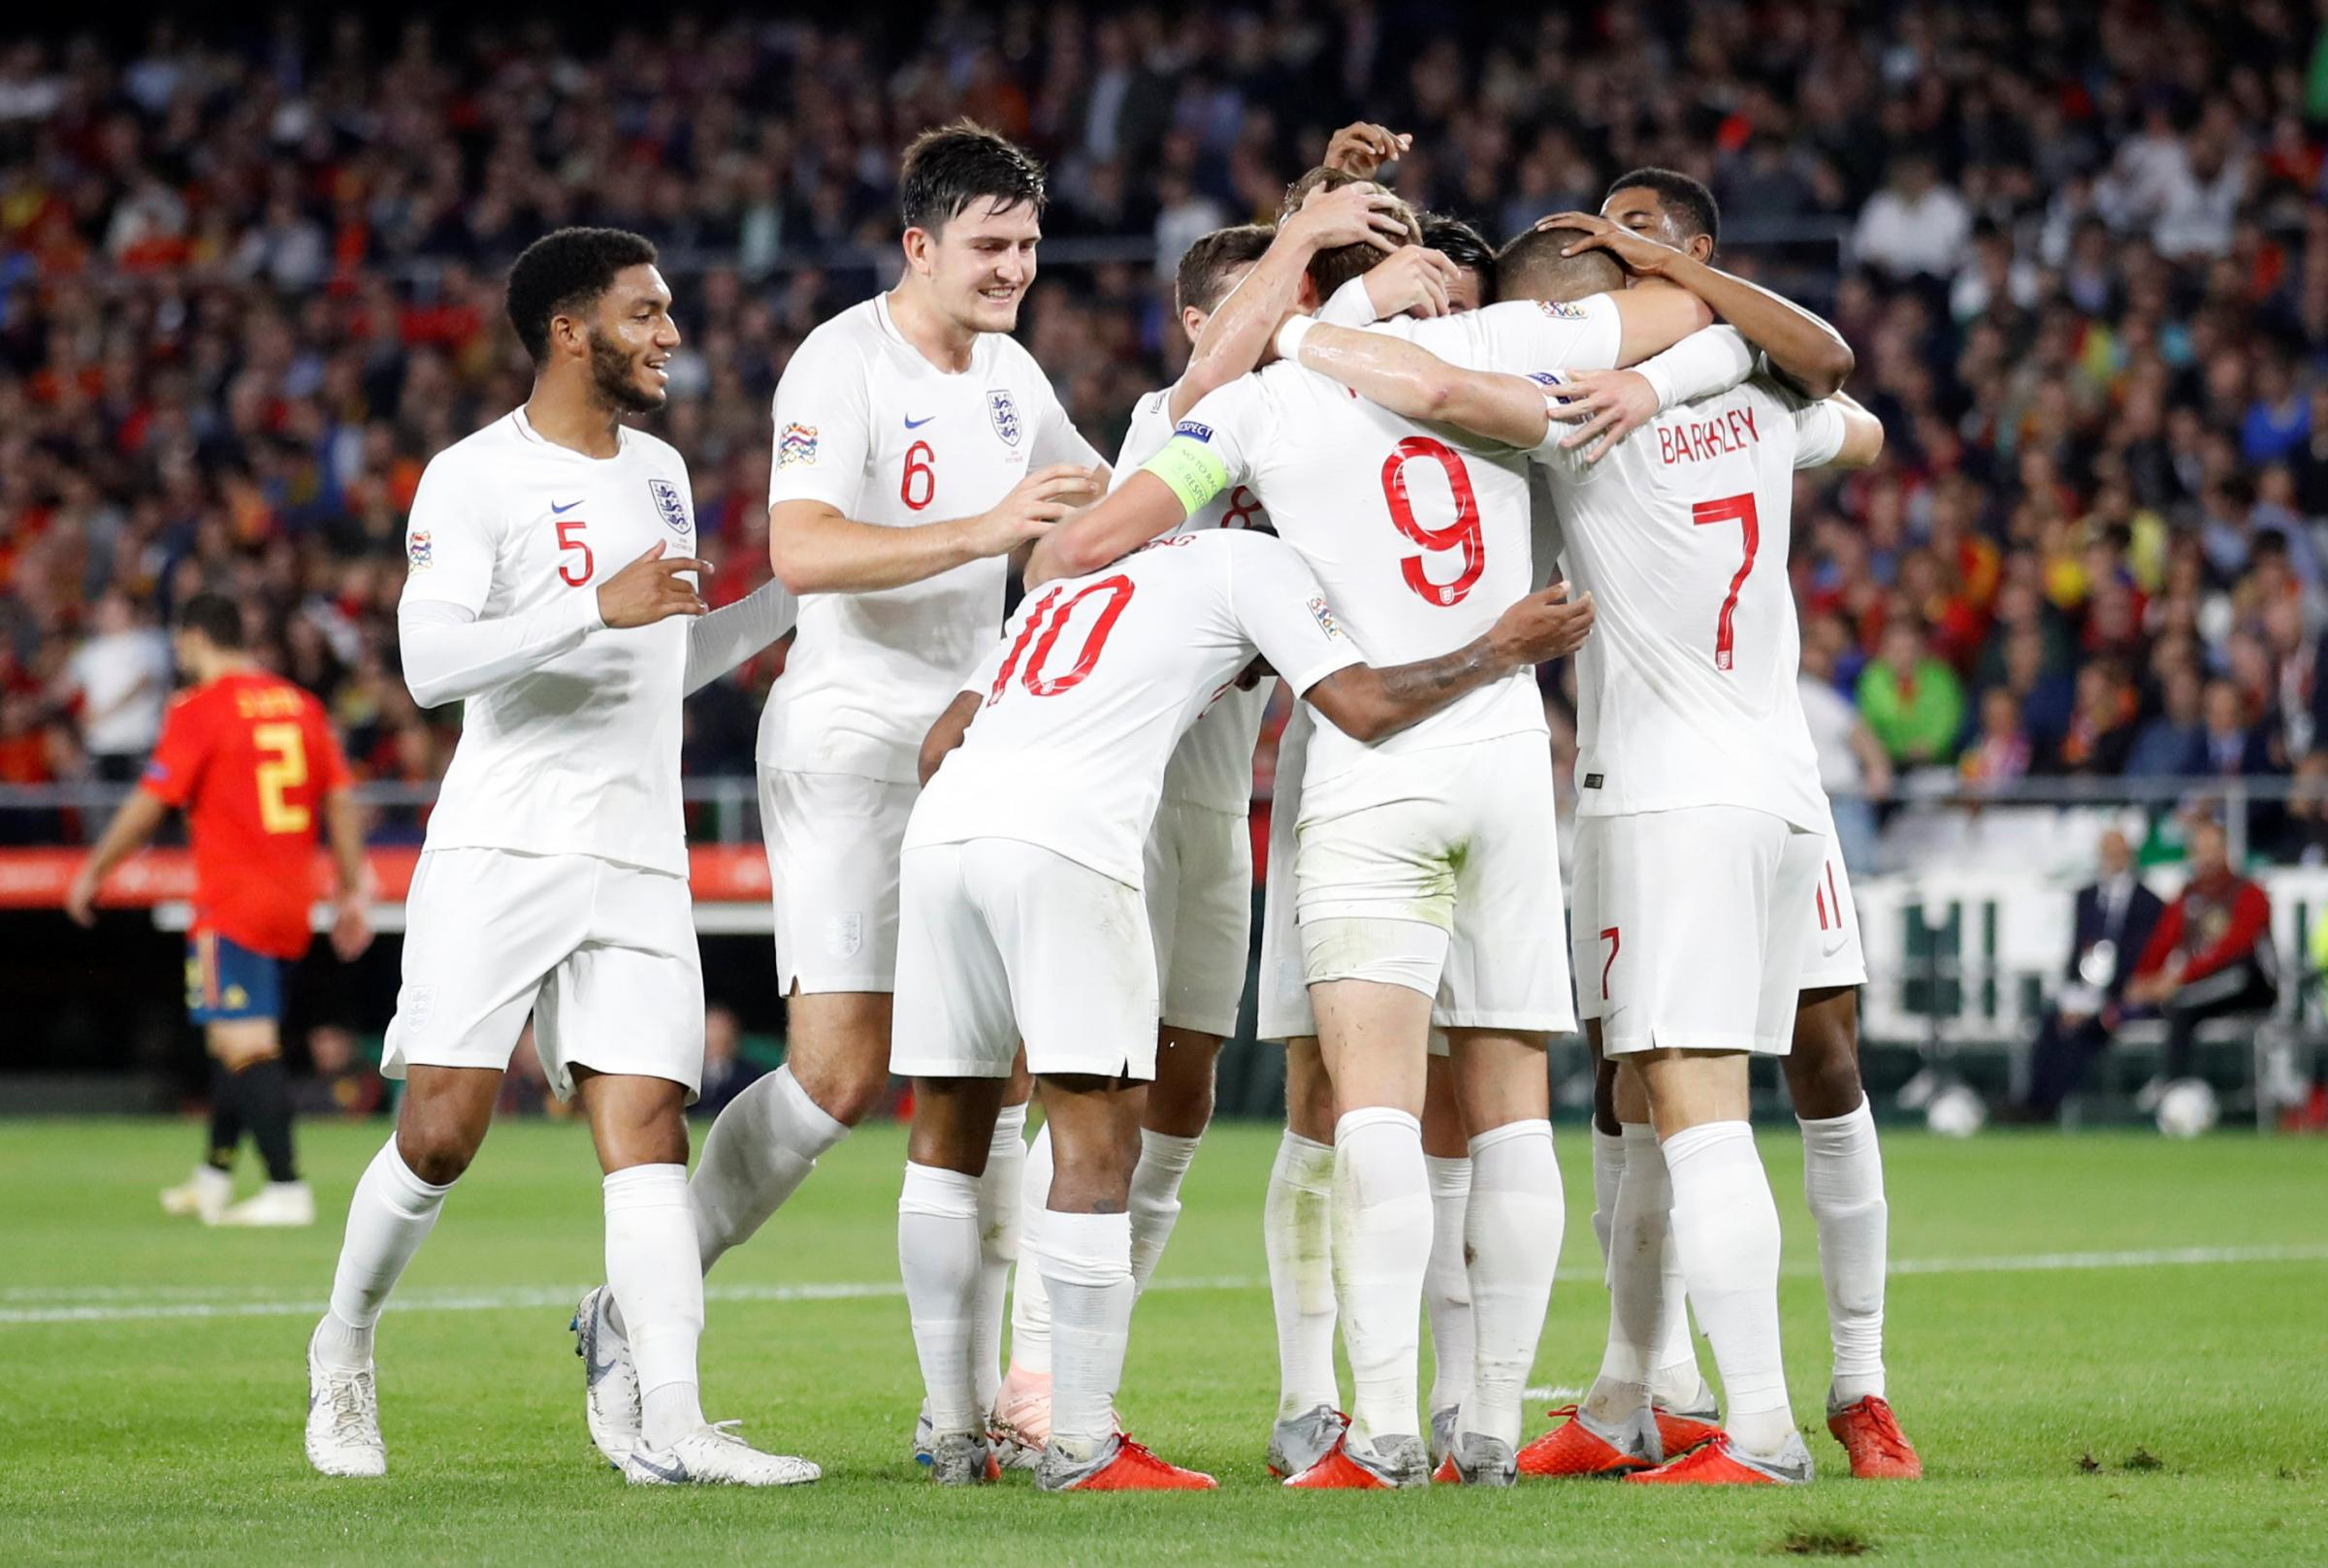 England celebrate Raheem Sterling putting Gareth Southgate's side 3-0 ahead. Picture: Action Images